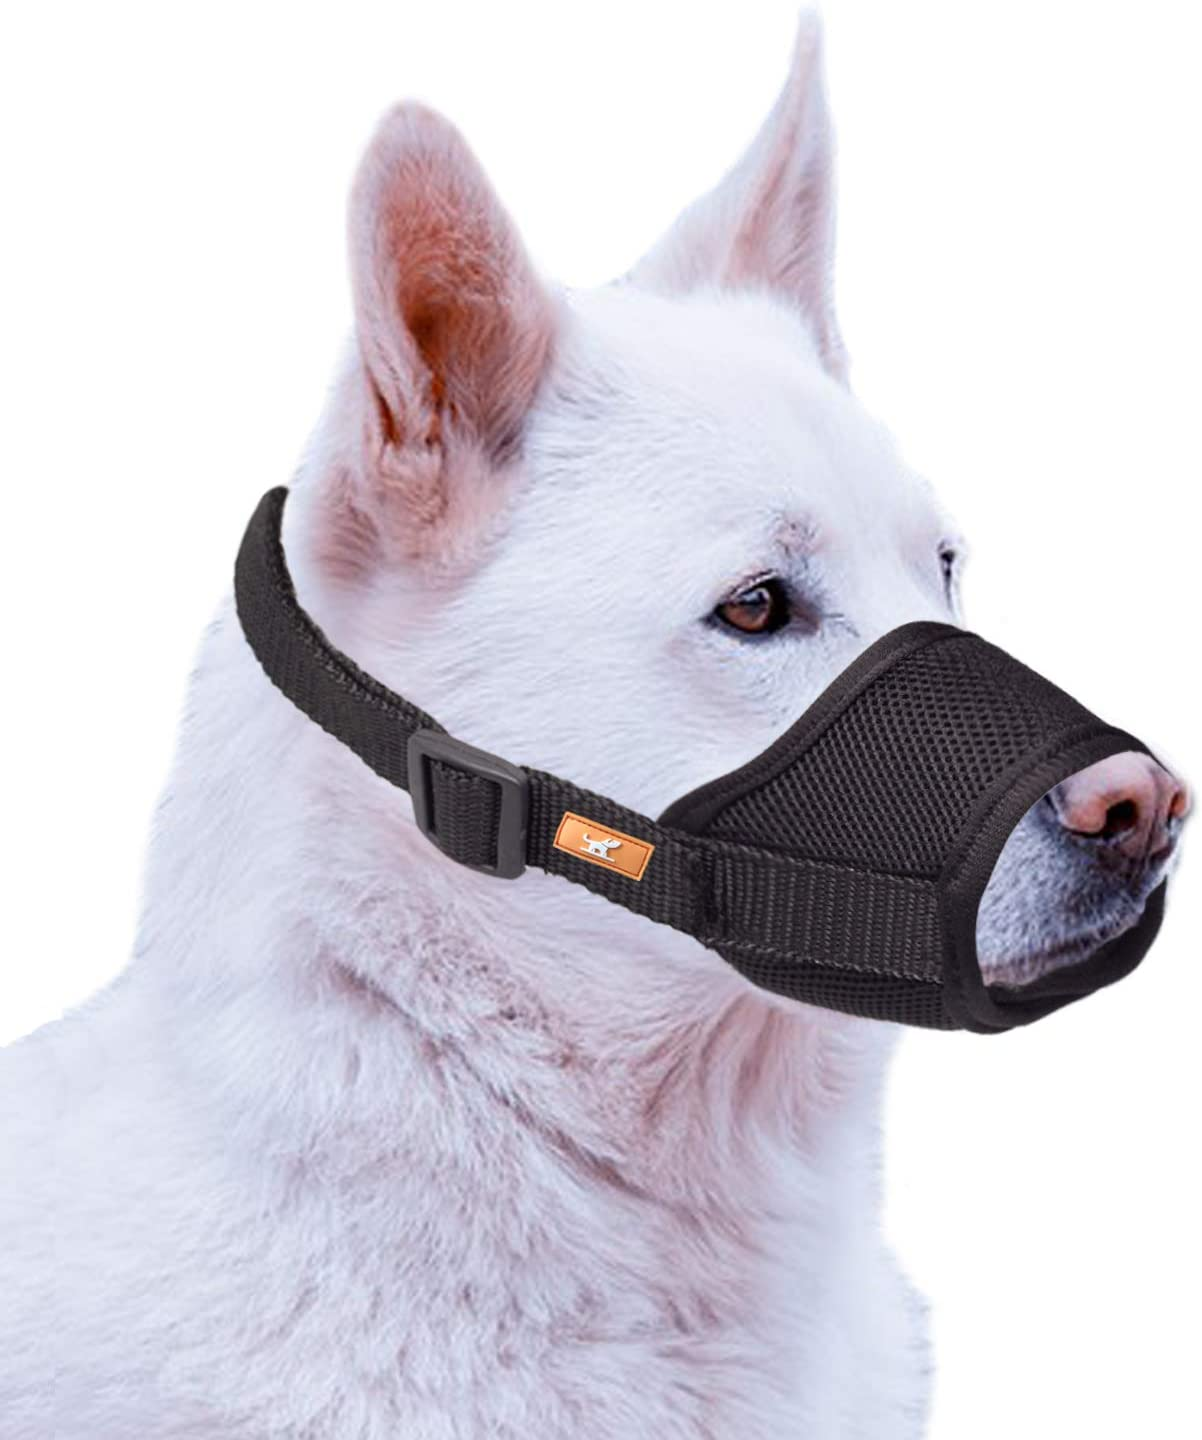 wintchuk Soft Dog Muzzle with Mesh Design, Breathable Dog Mouth Cover for Small Medium Large Dogs, Anti-Biting Barking Chewing